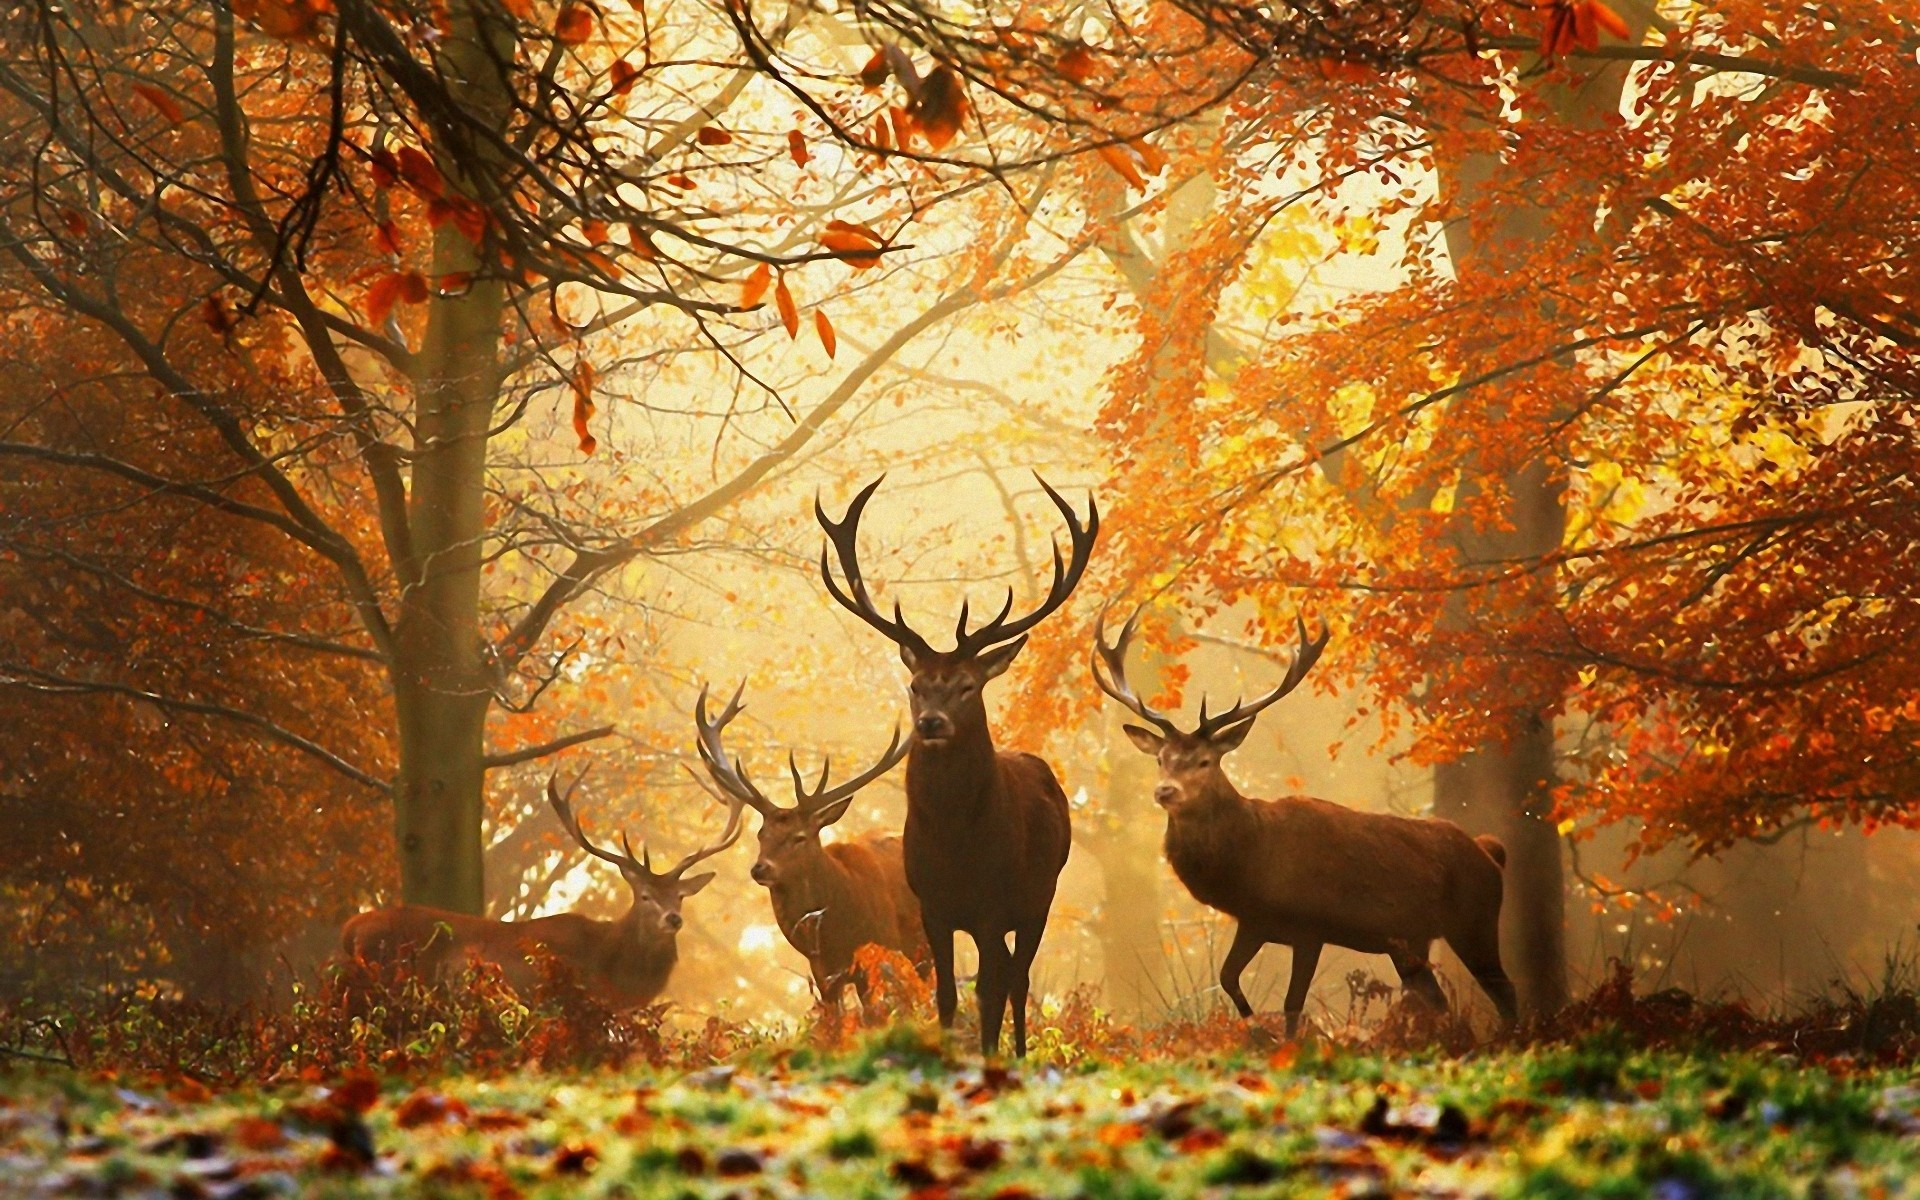 20525 download wallpaper Animals, Autumn, Deers screensavers and pictures for free